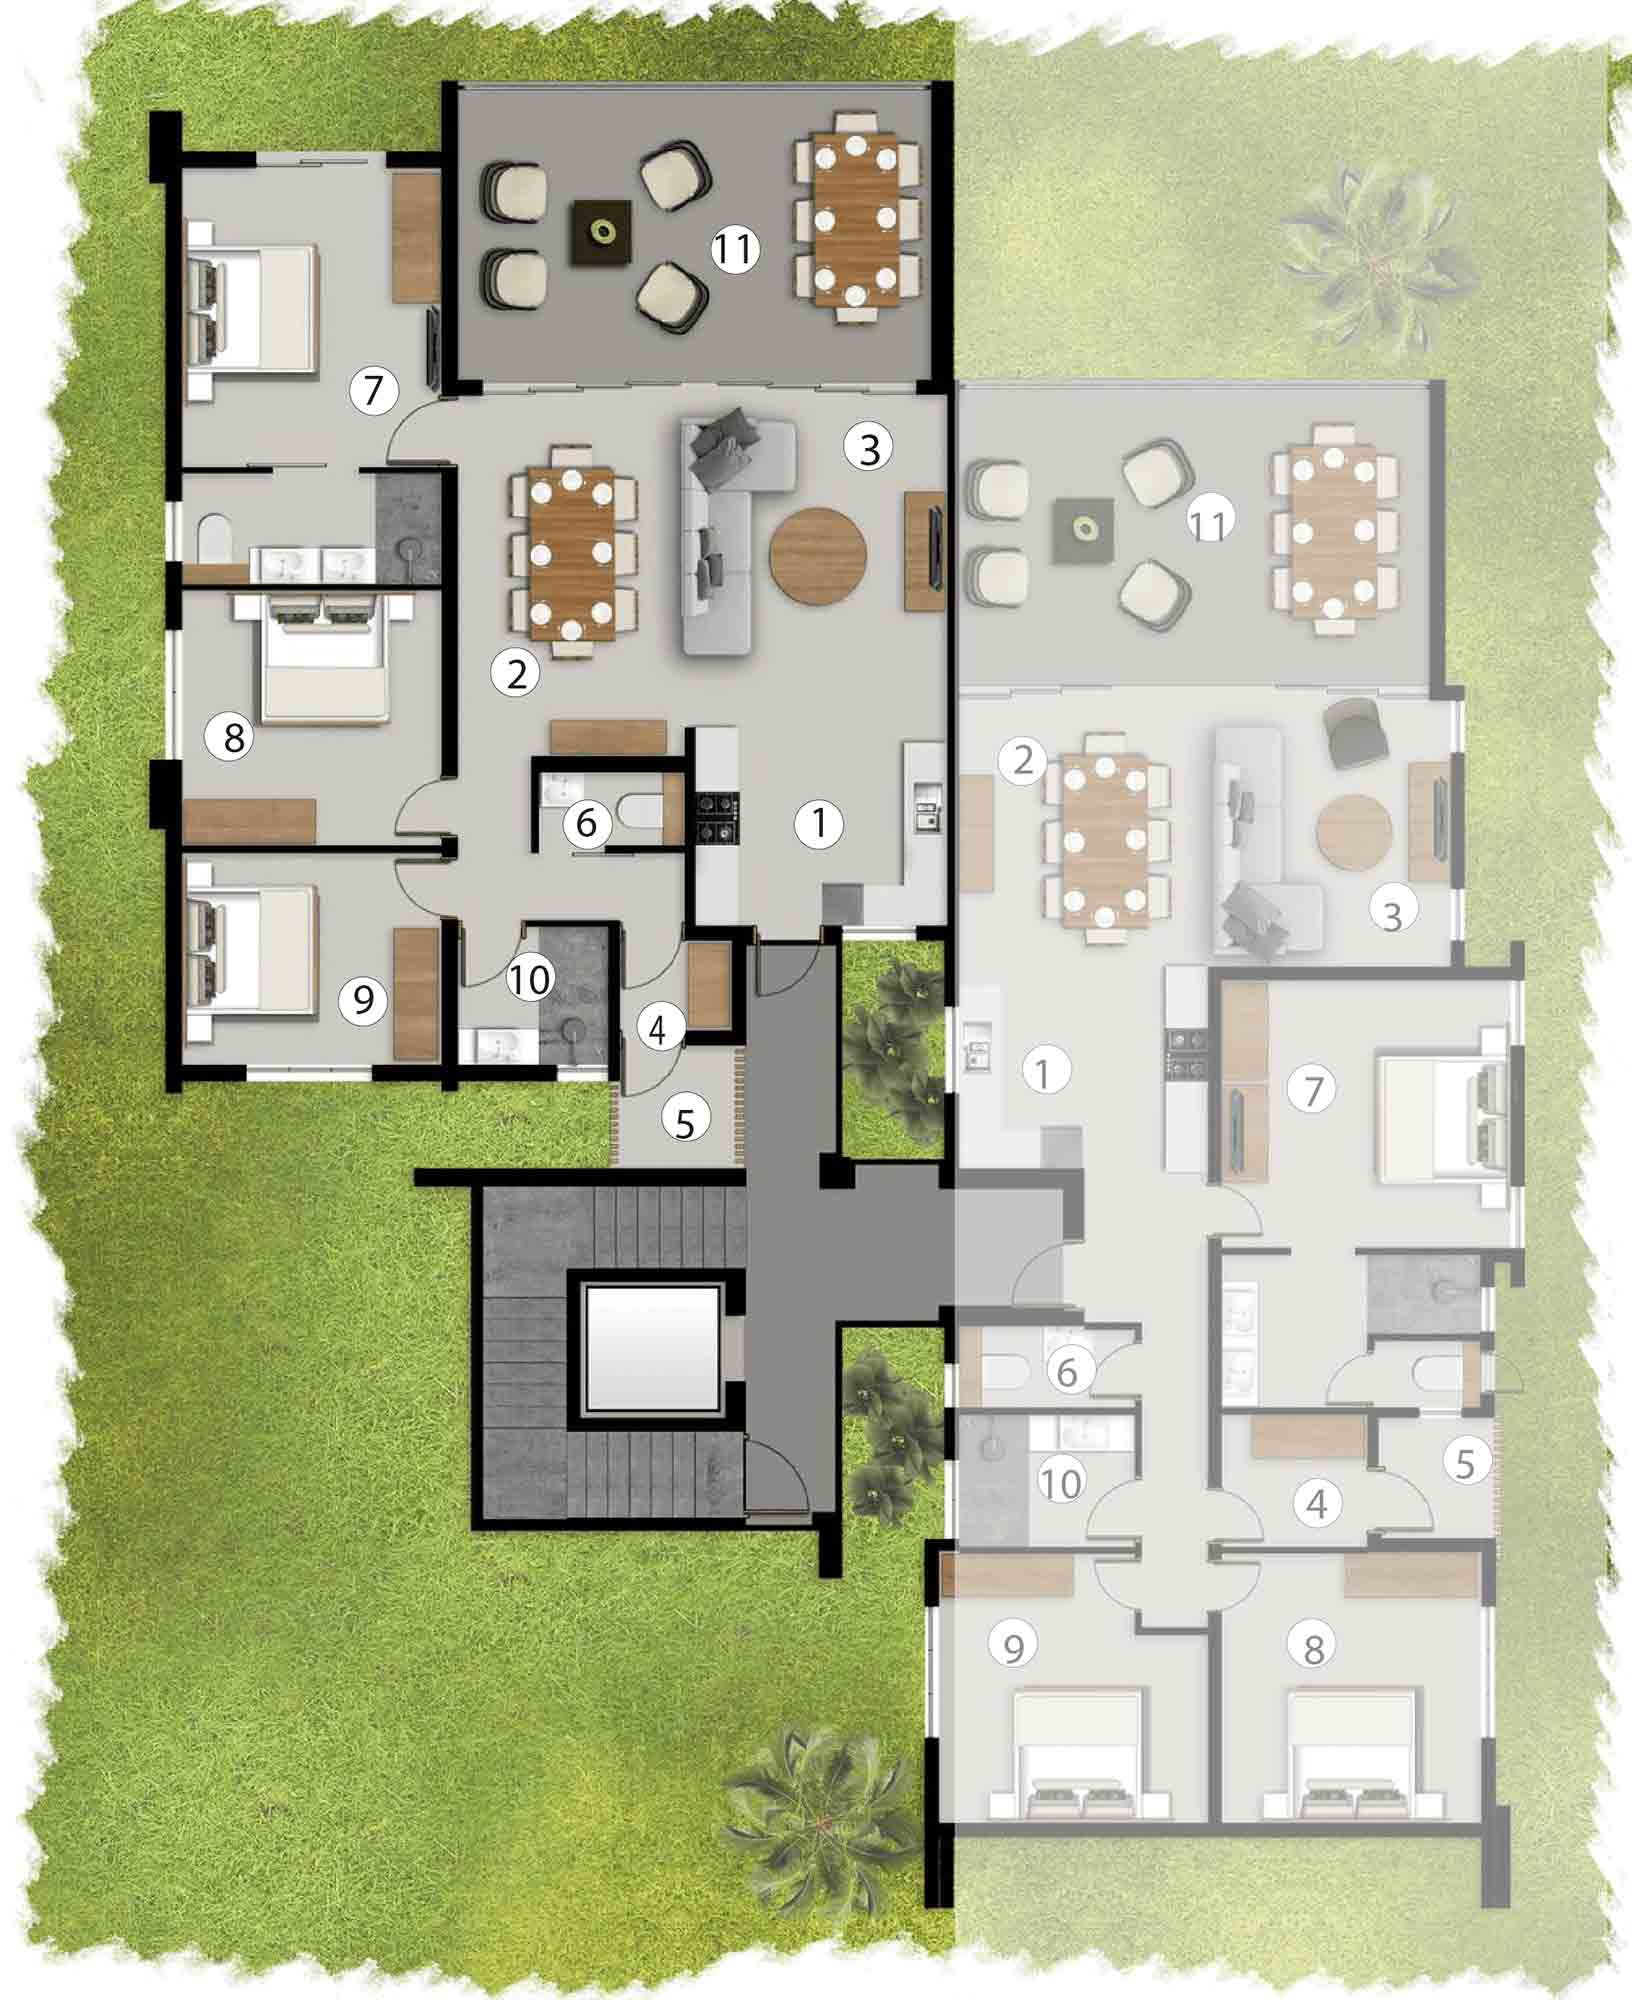 Apartments First Floor - AF1/BF2/CF1